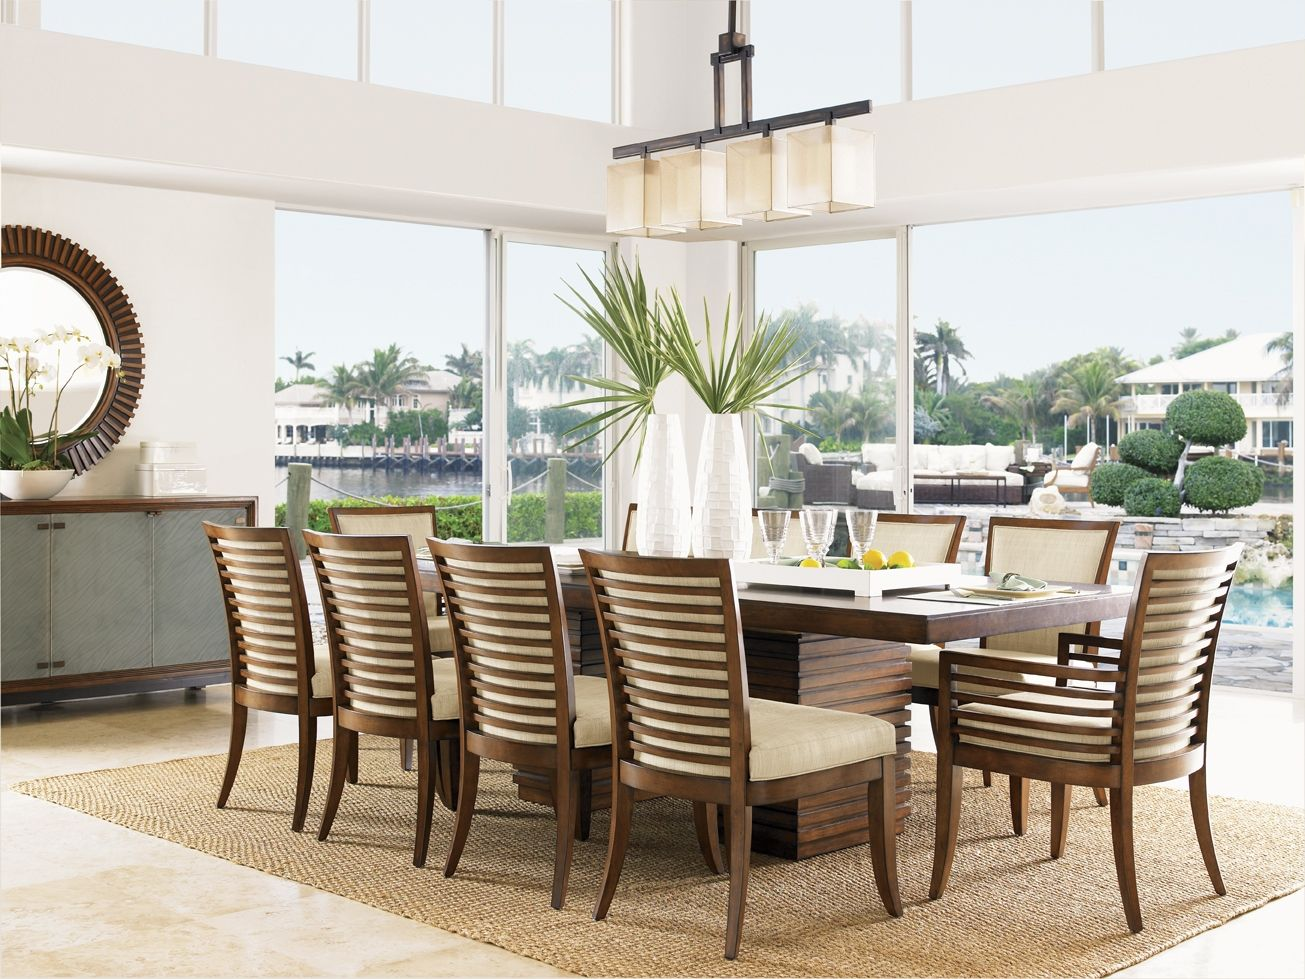 Tropical Dining Room Furniture Set  Httpenricbataller Impressive Tropical Dining Room Chairs Design Decoration